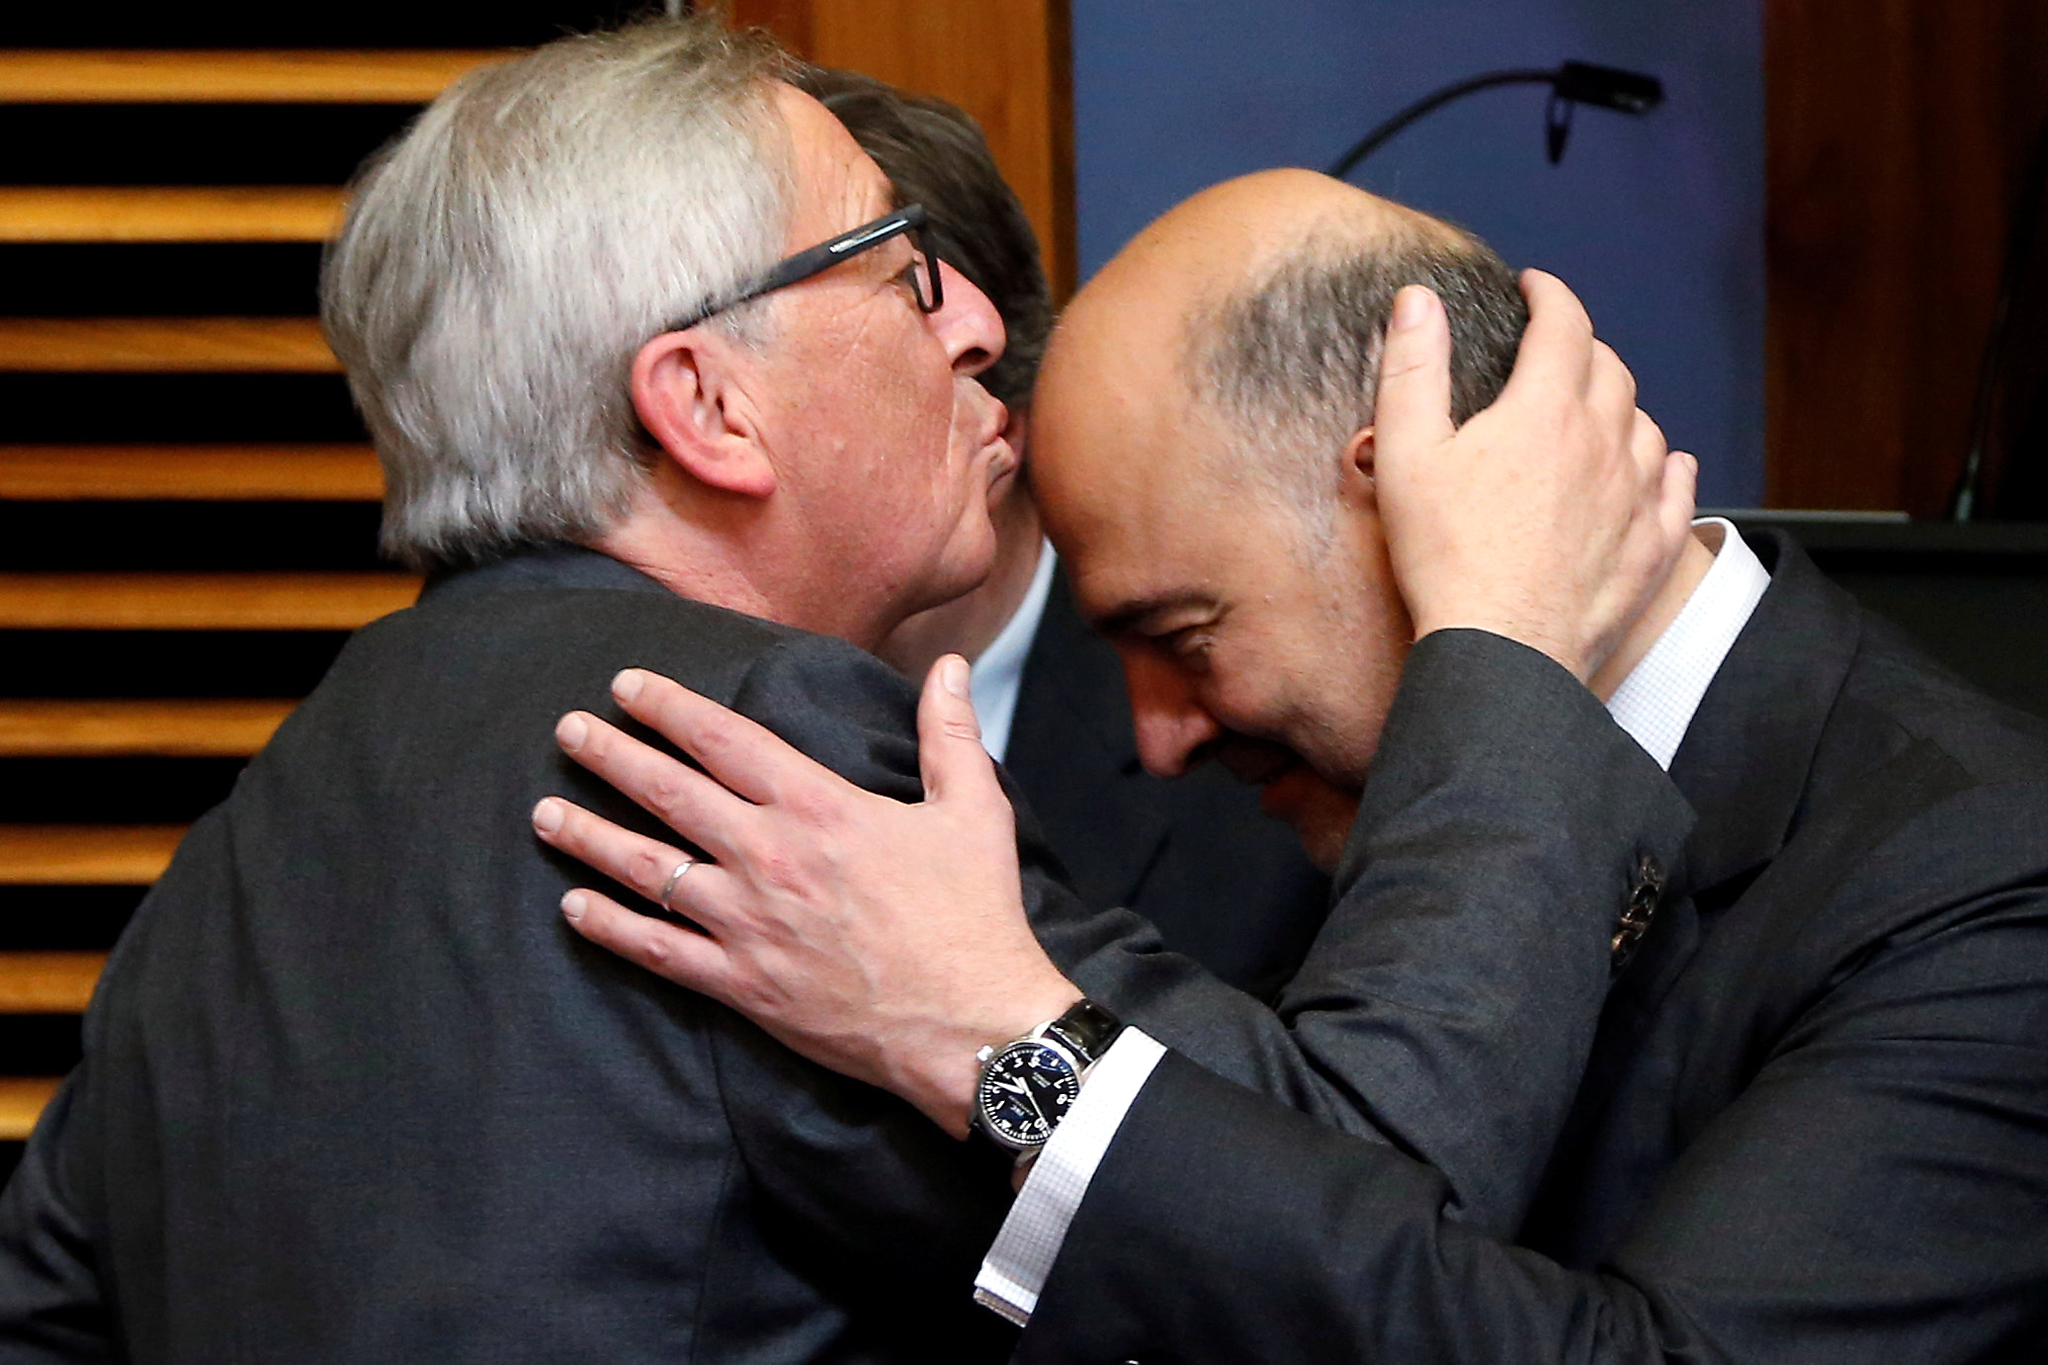 European Commission President Jean-Claude Juncker kisses European Economic and Financial Affairs Commissioner Pierre Moscoviciduring a meeting of the EU's executive body in Brussels, Belgium, June 27, 2016.    REUTERS/Francois Lenoir